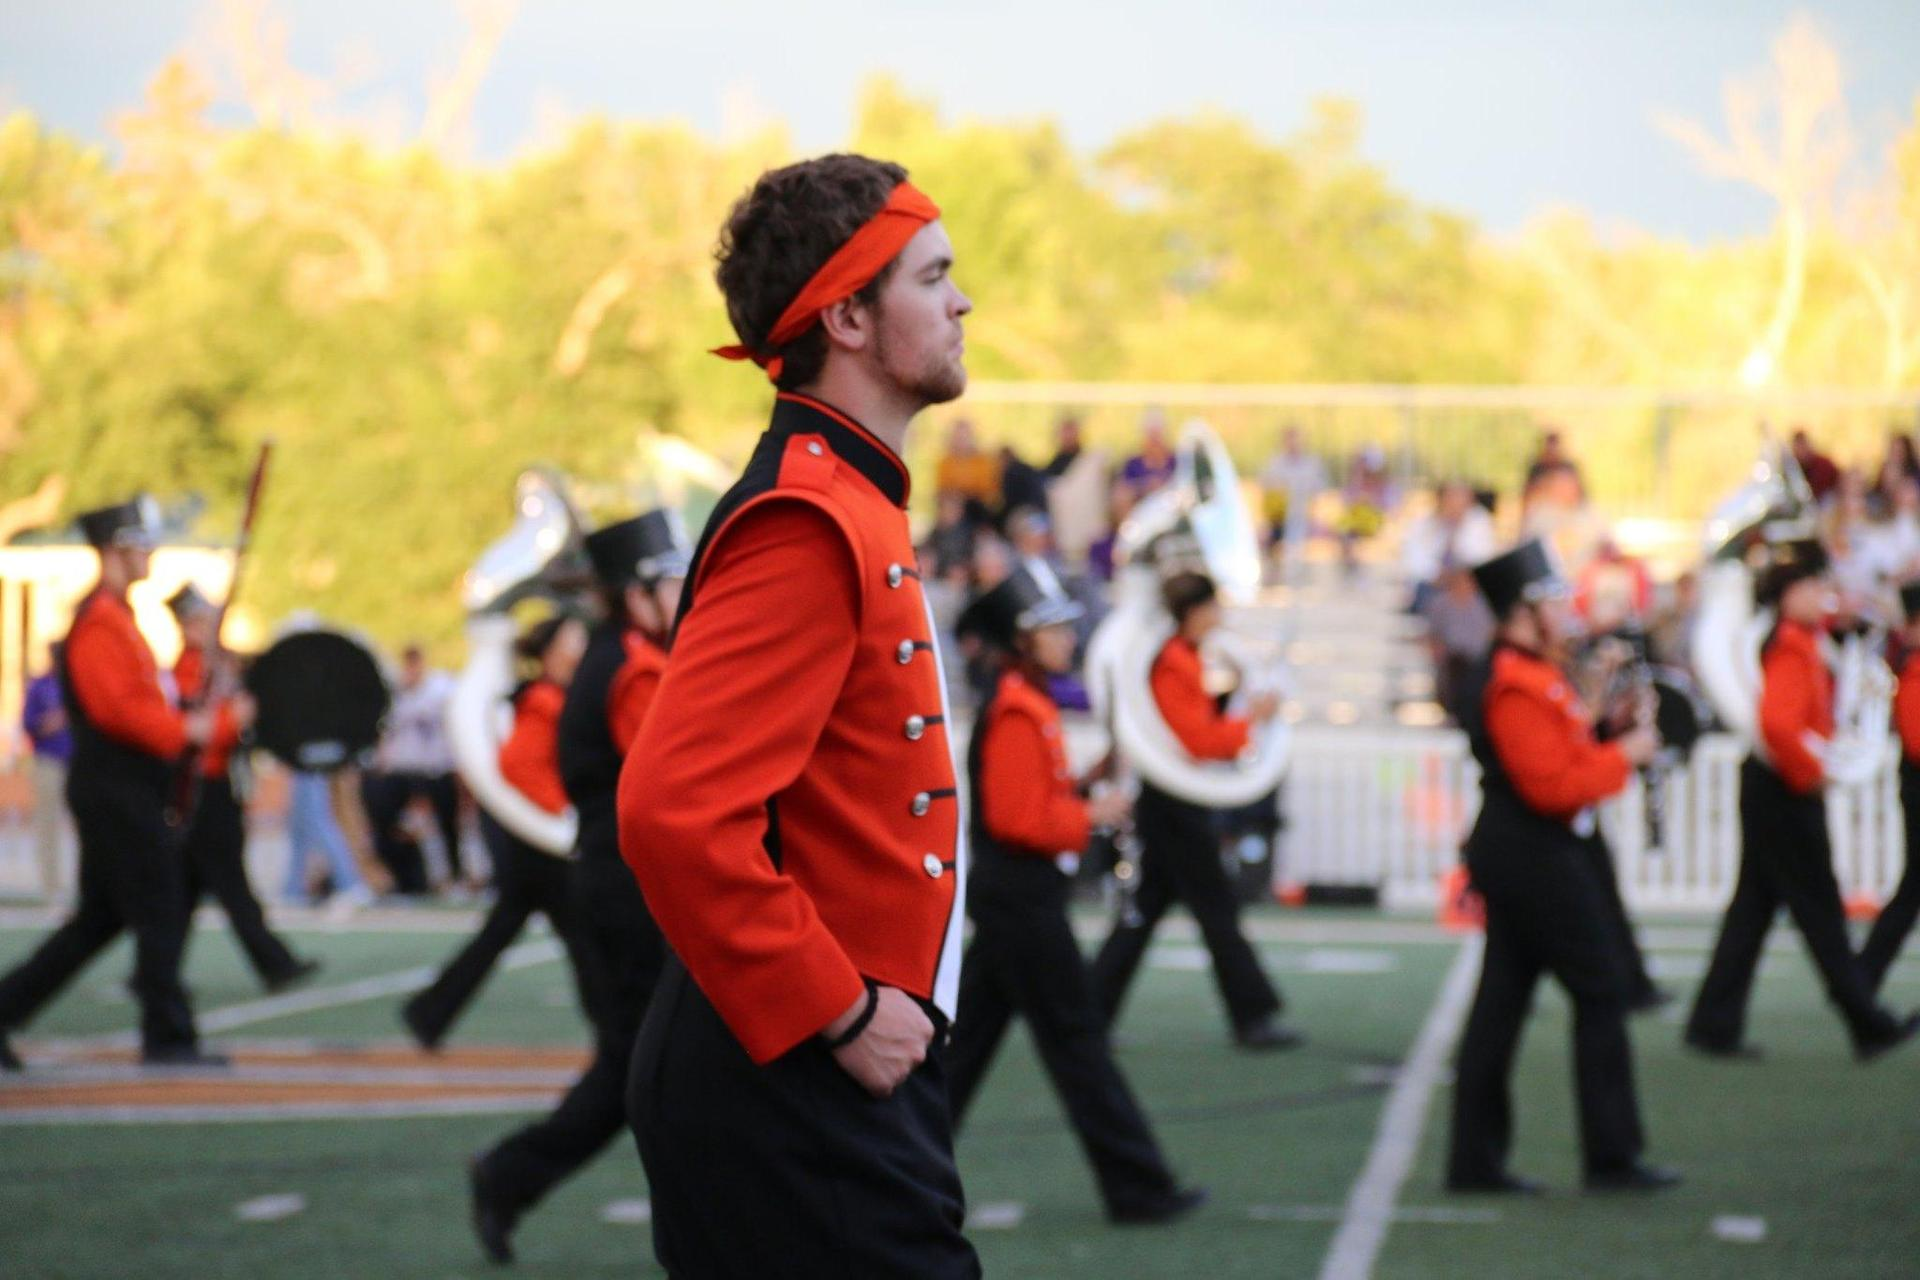 Boy marching in marching band